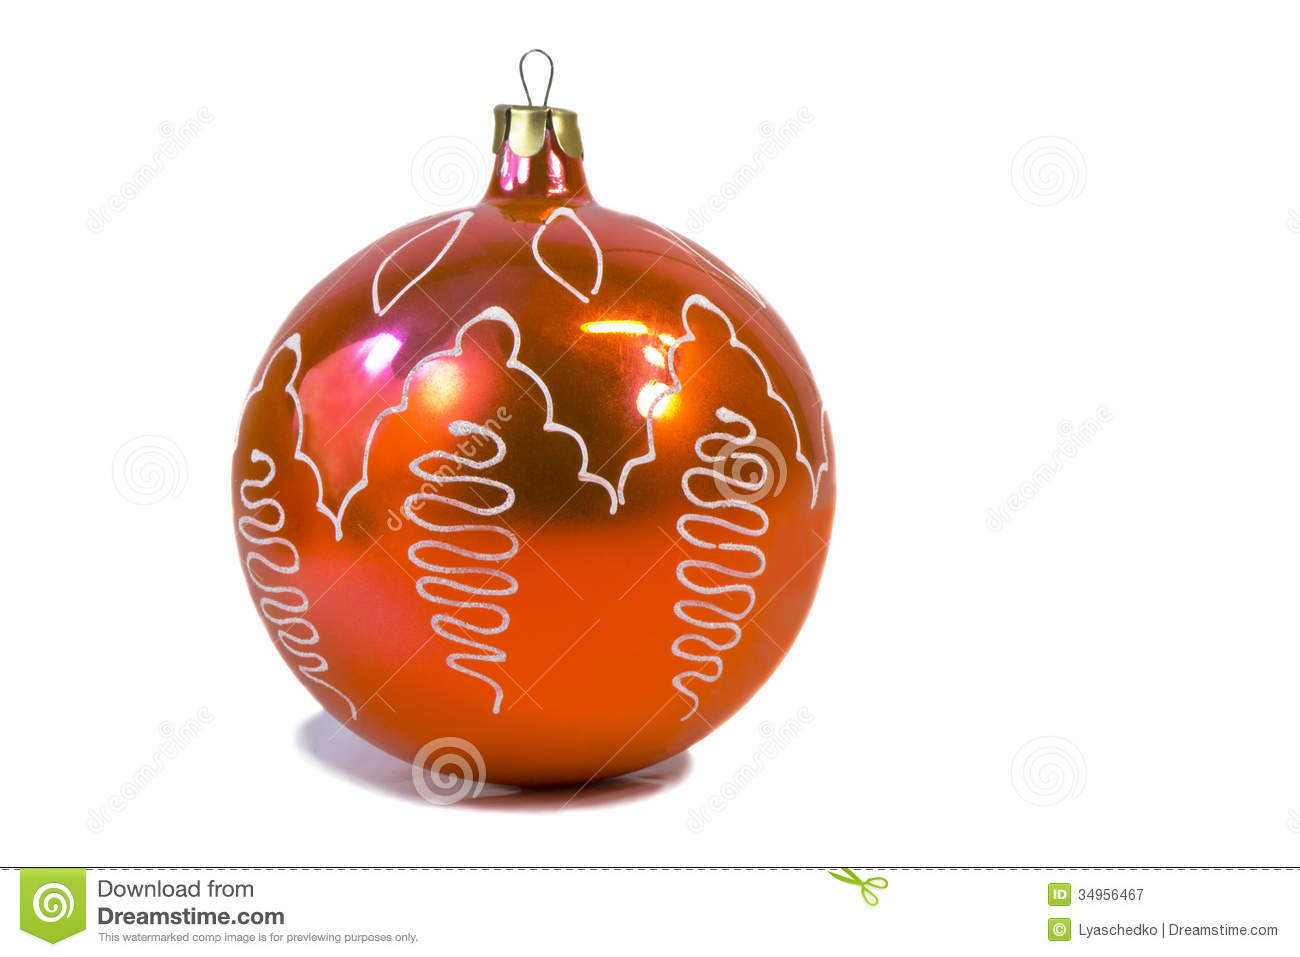 Decorations for christmas trees red beautiful balloon for White tree red ornaments